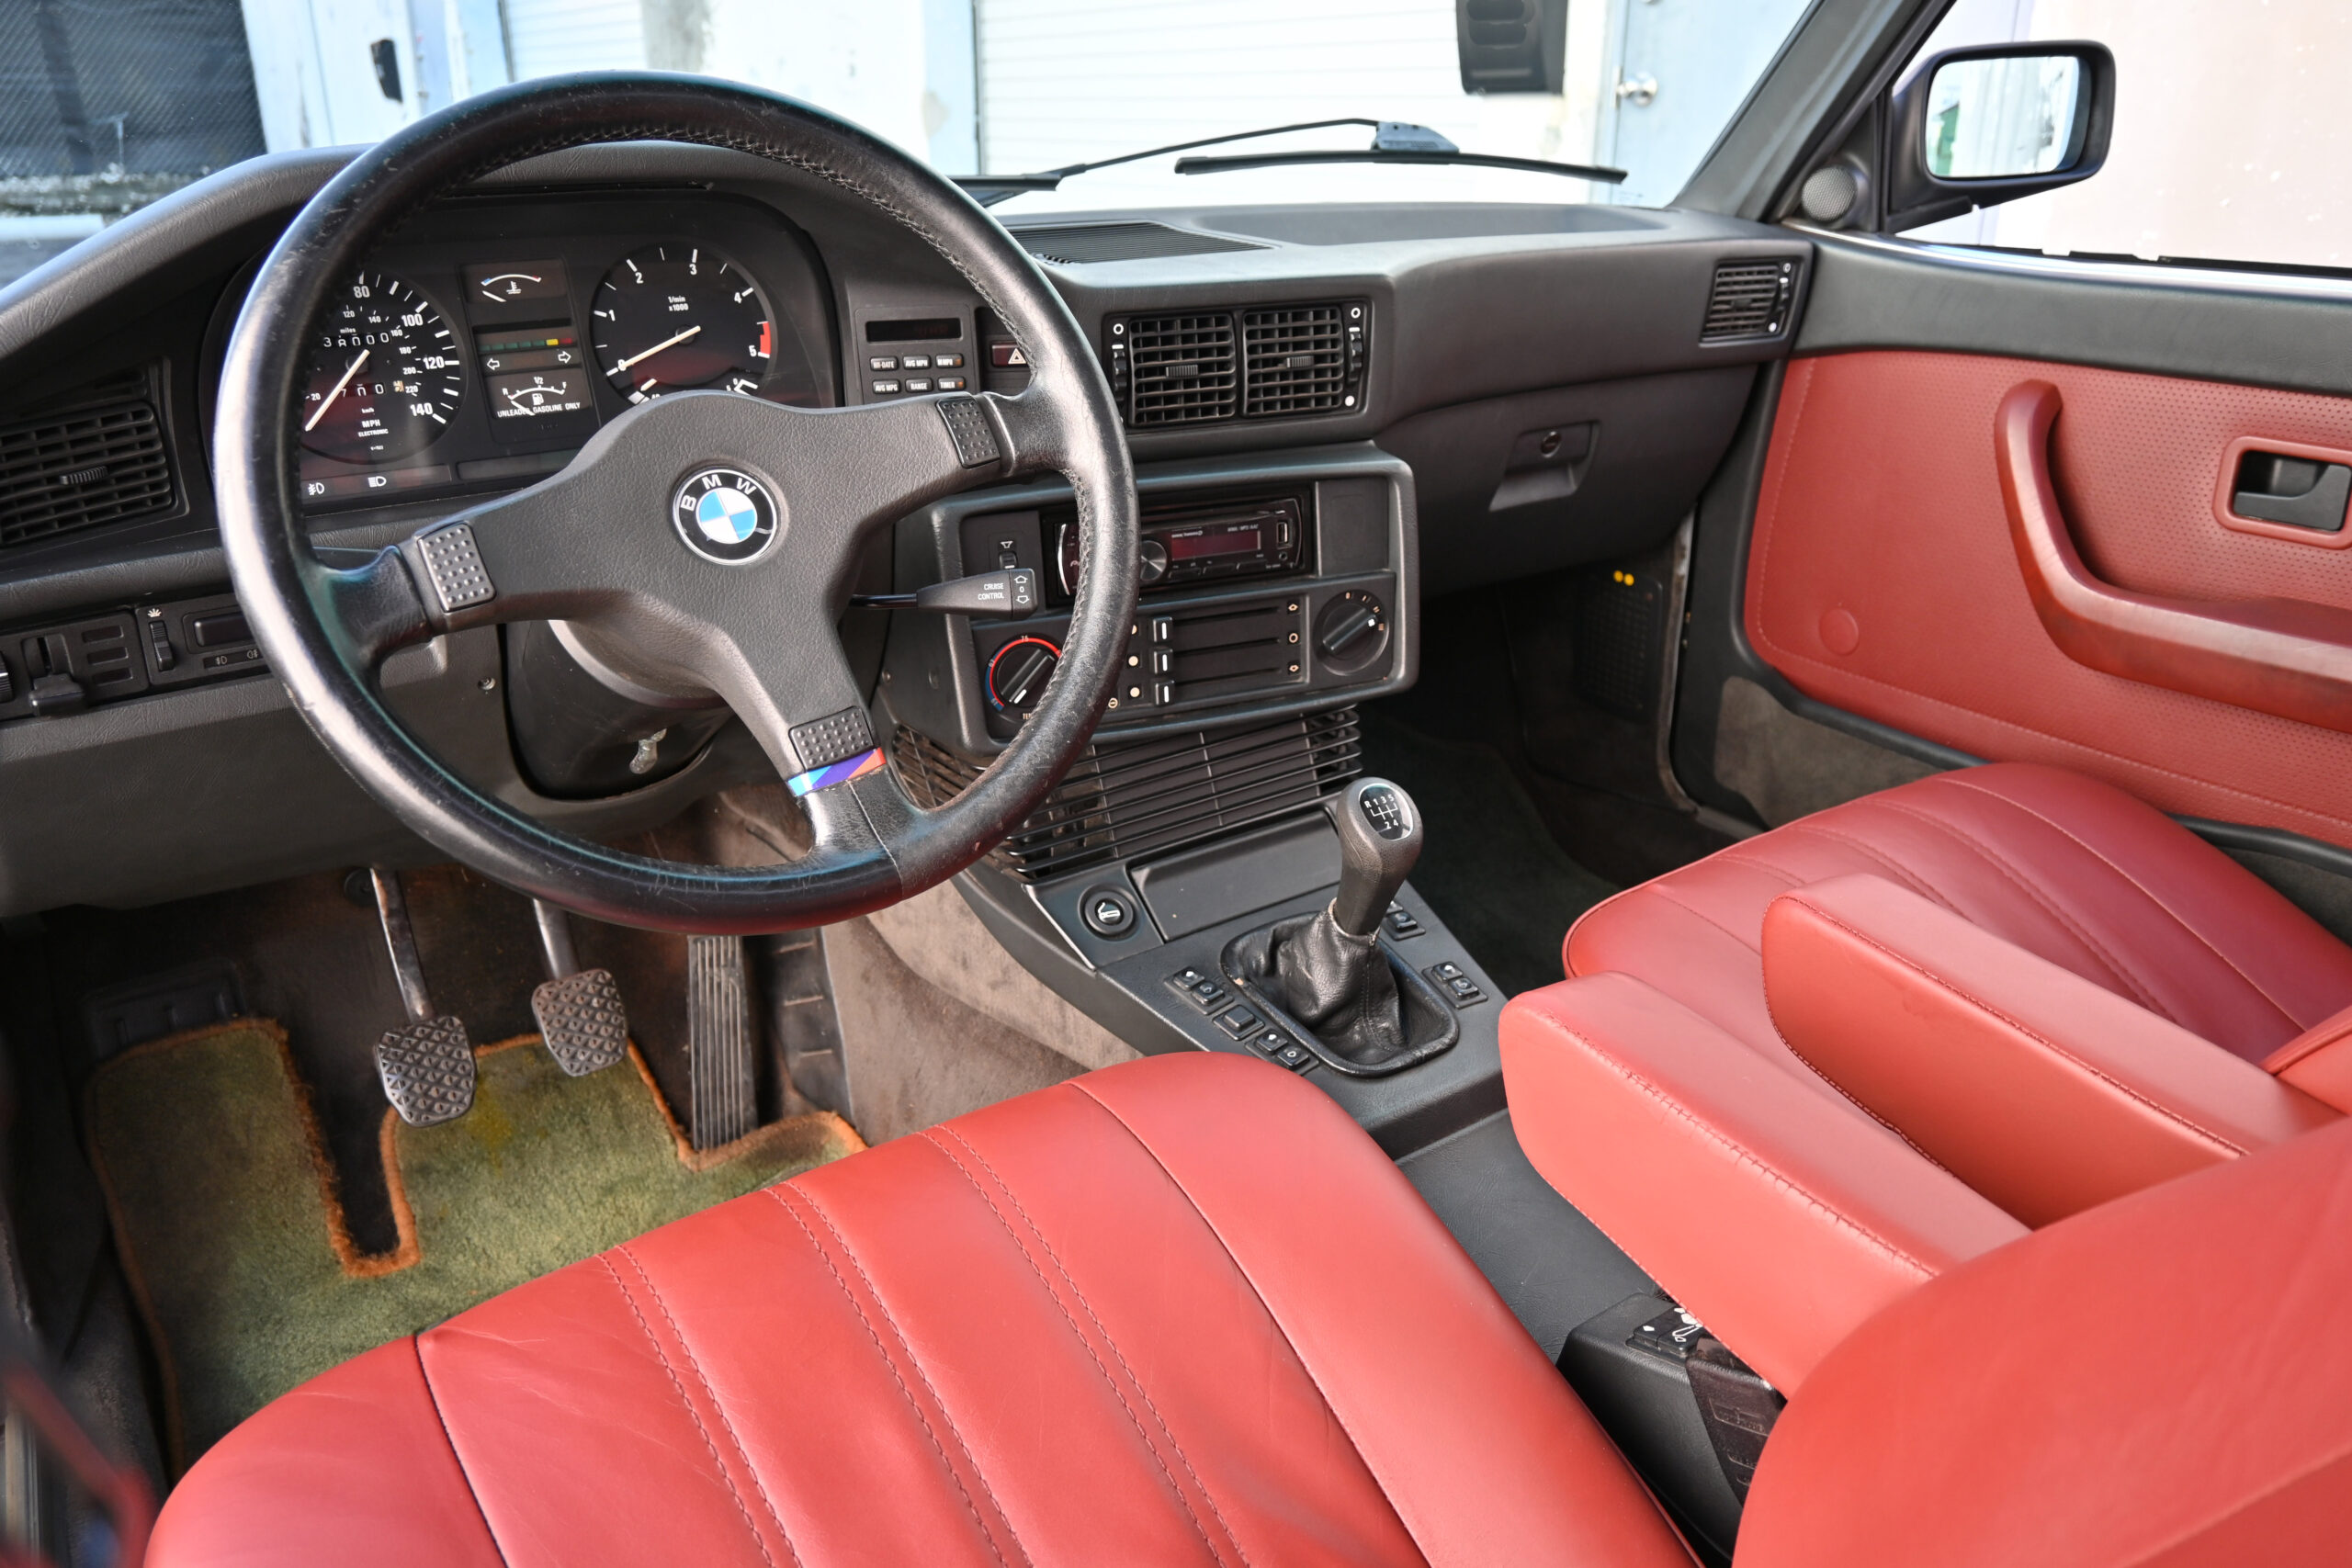 1987 BMW 528e, Manual 5-speed, Salmon Silver over red leather, serviced.